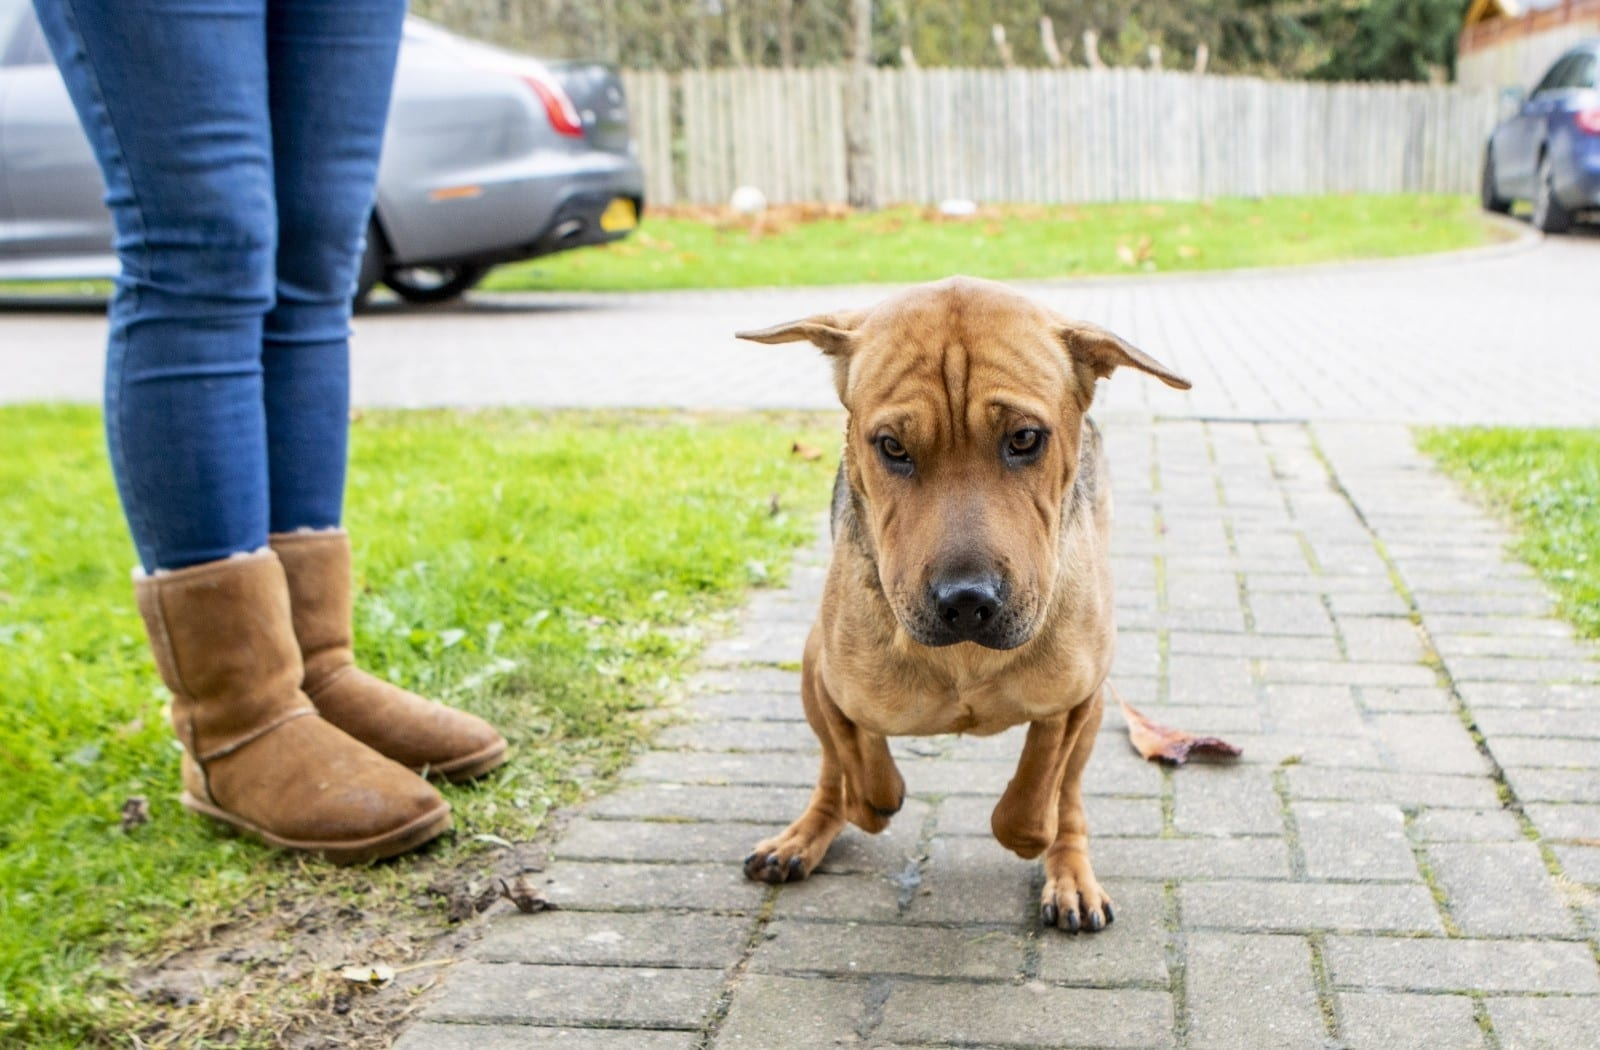 Shar Pei Puppy Who Had Her Front Paws CHOPPED OFF By Cruel Thugs In Romania Is Enjoying A New Life In Britain